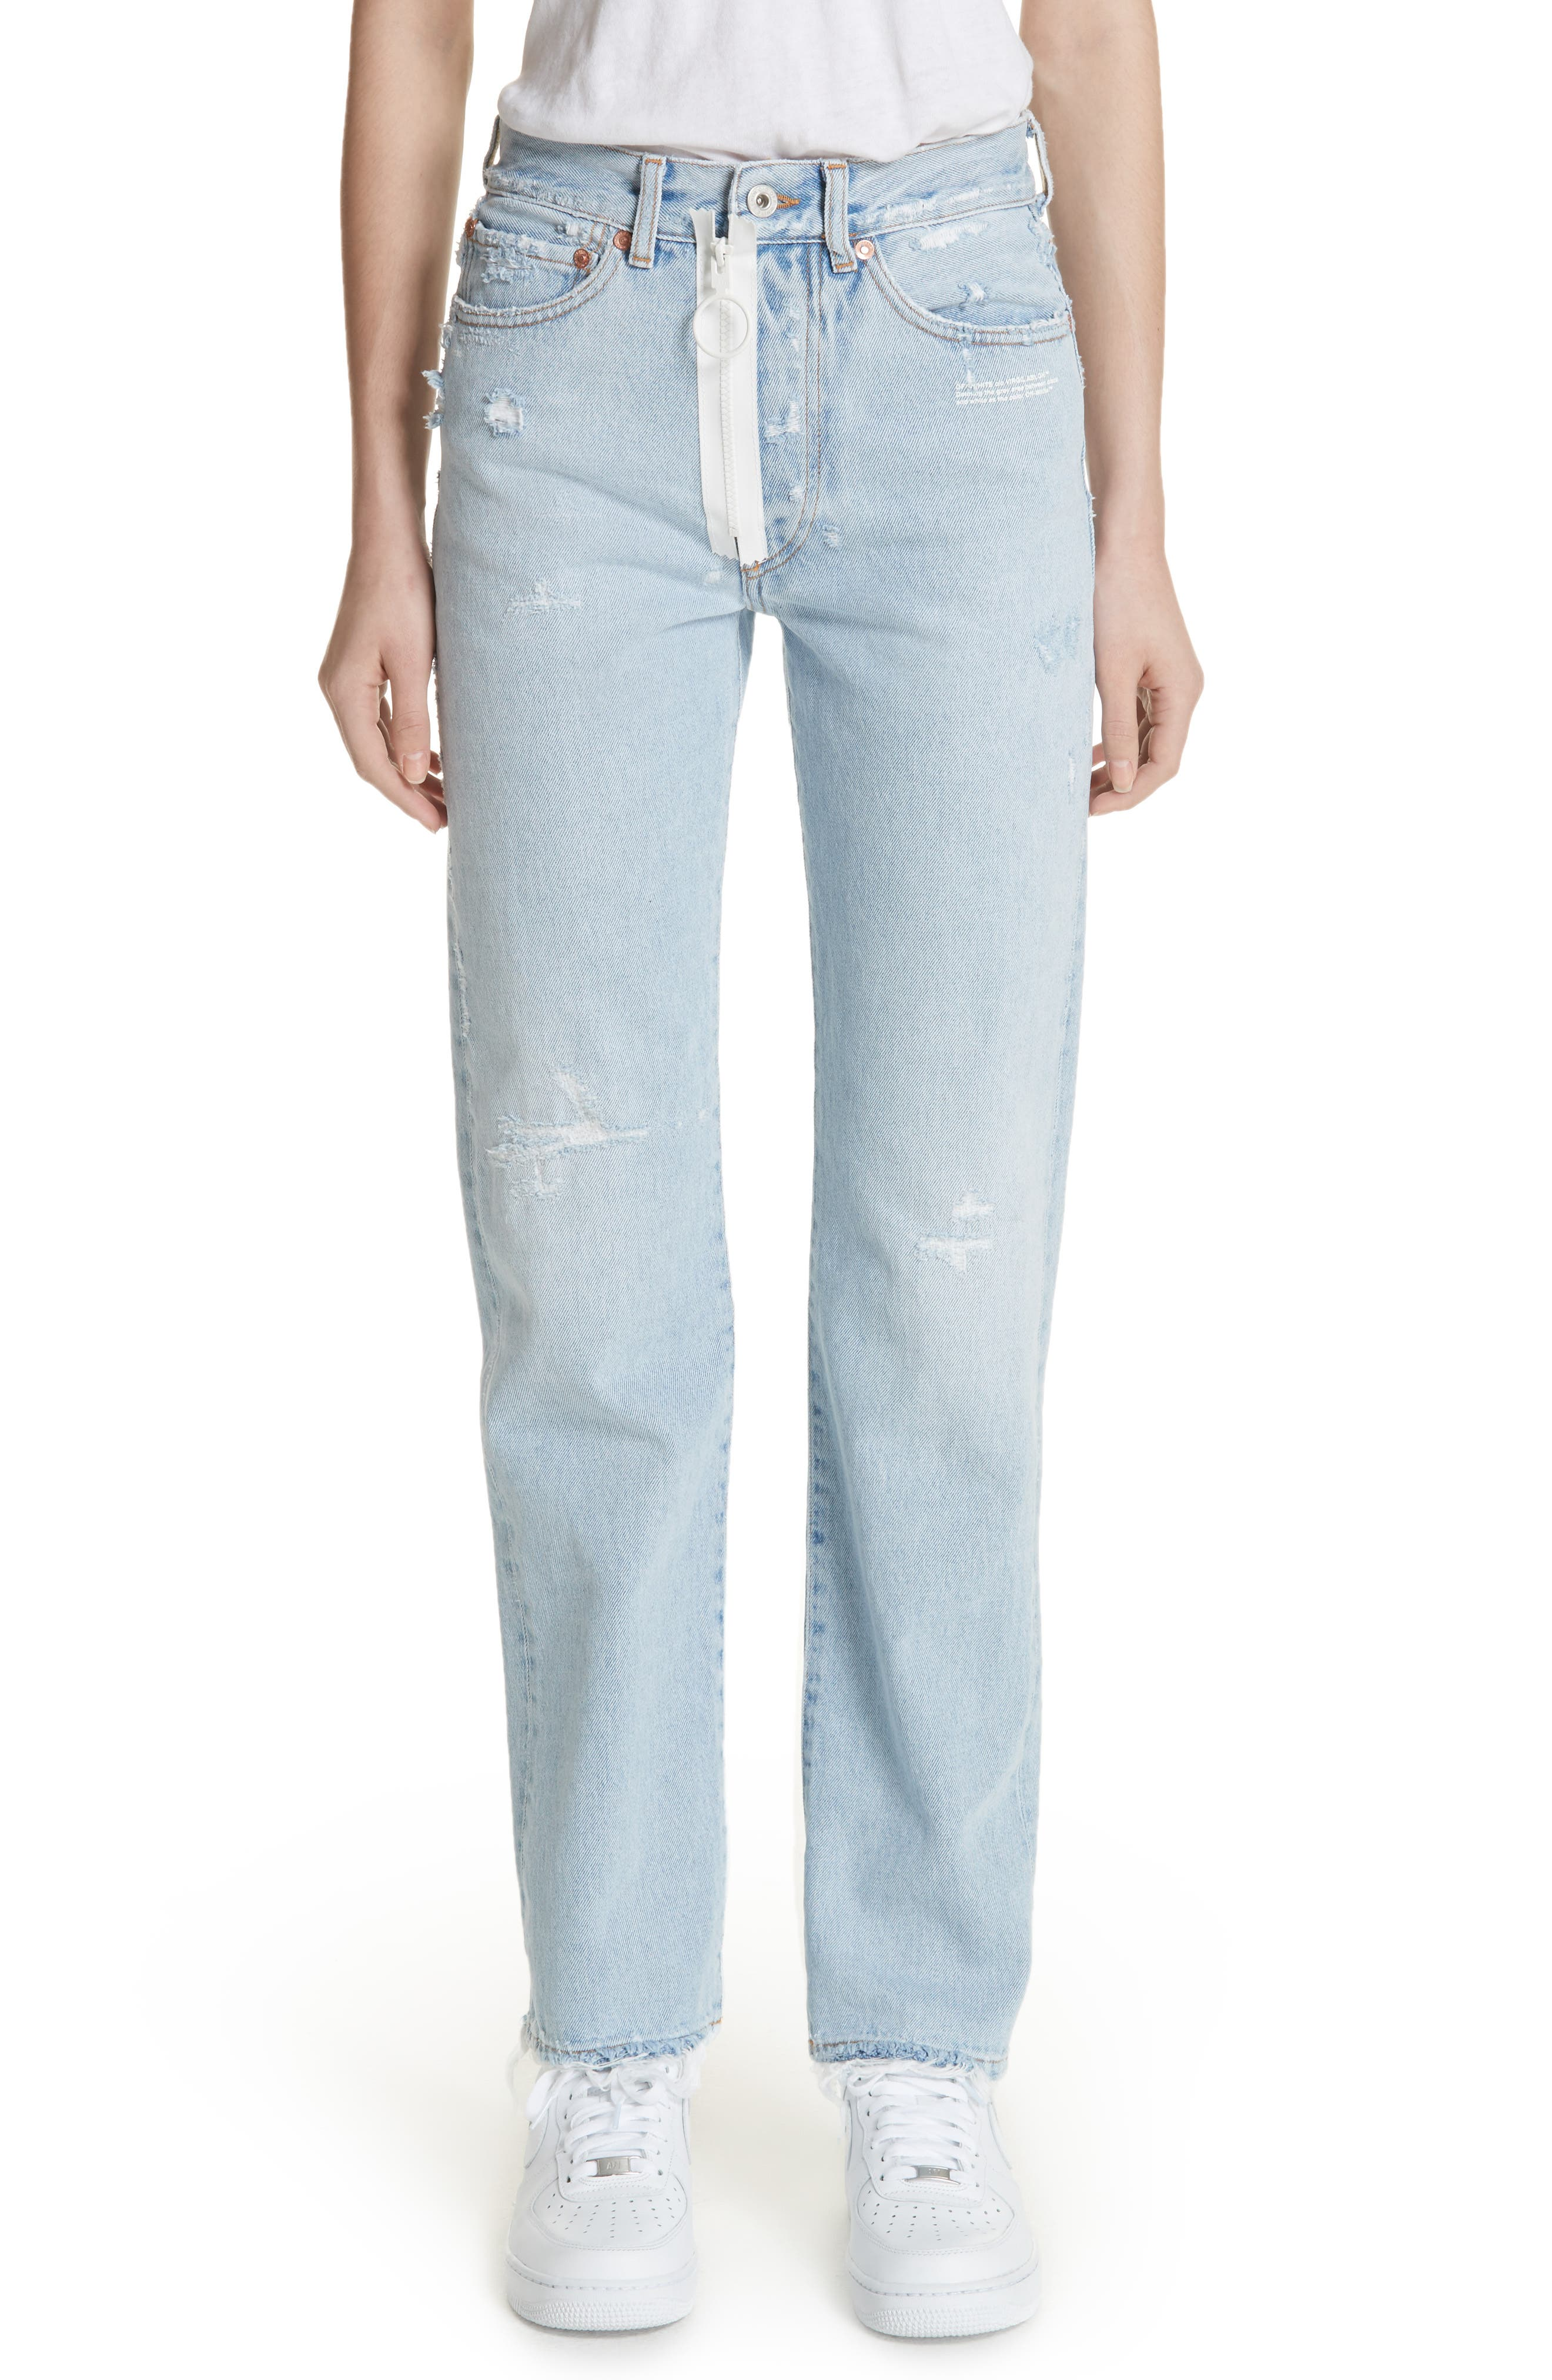 Alternate Image 1 Selected - Off-White Distressed Straight Leg Jeans (Bleach/White)